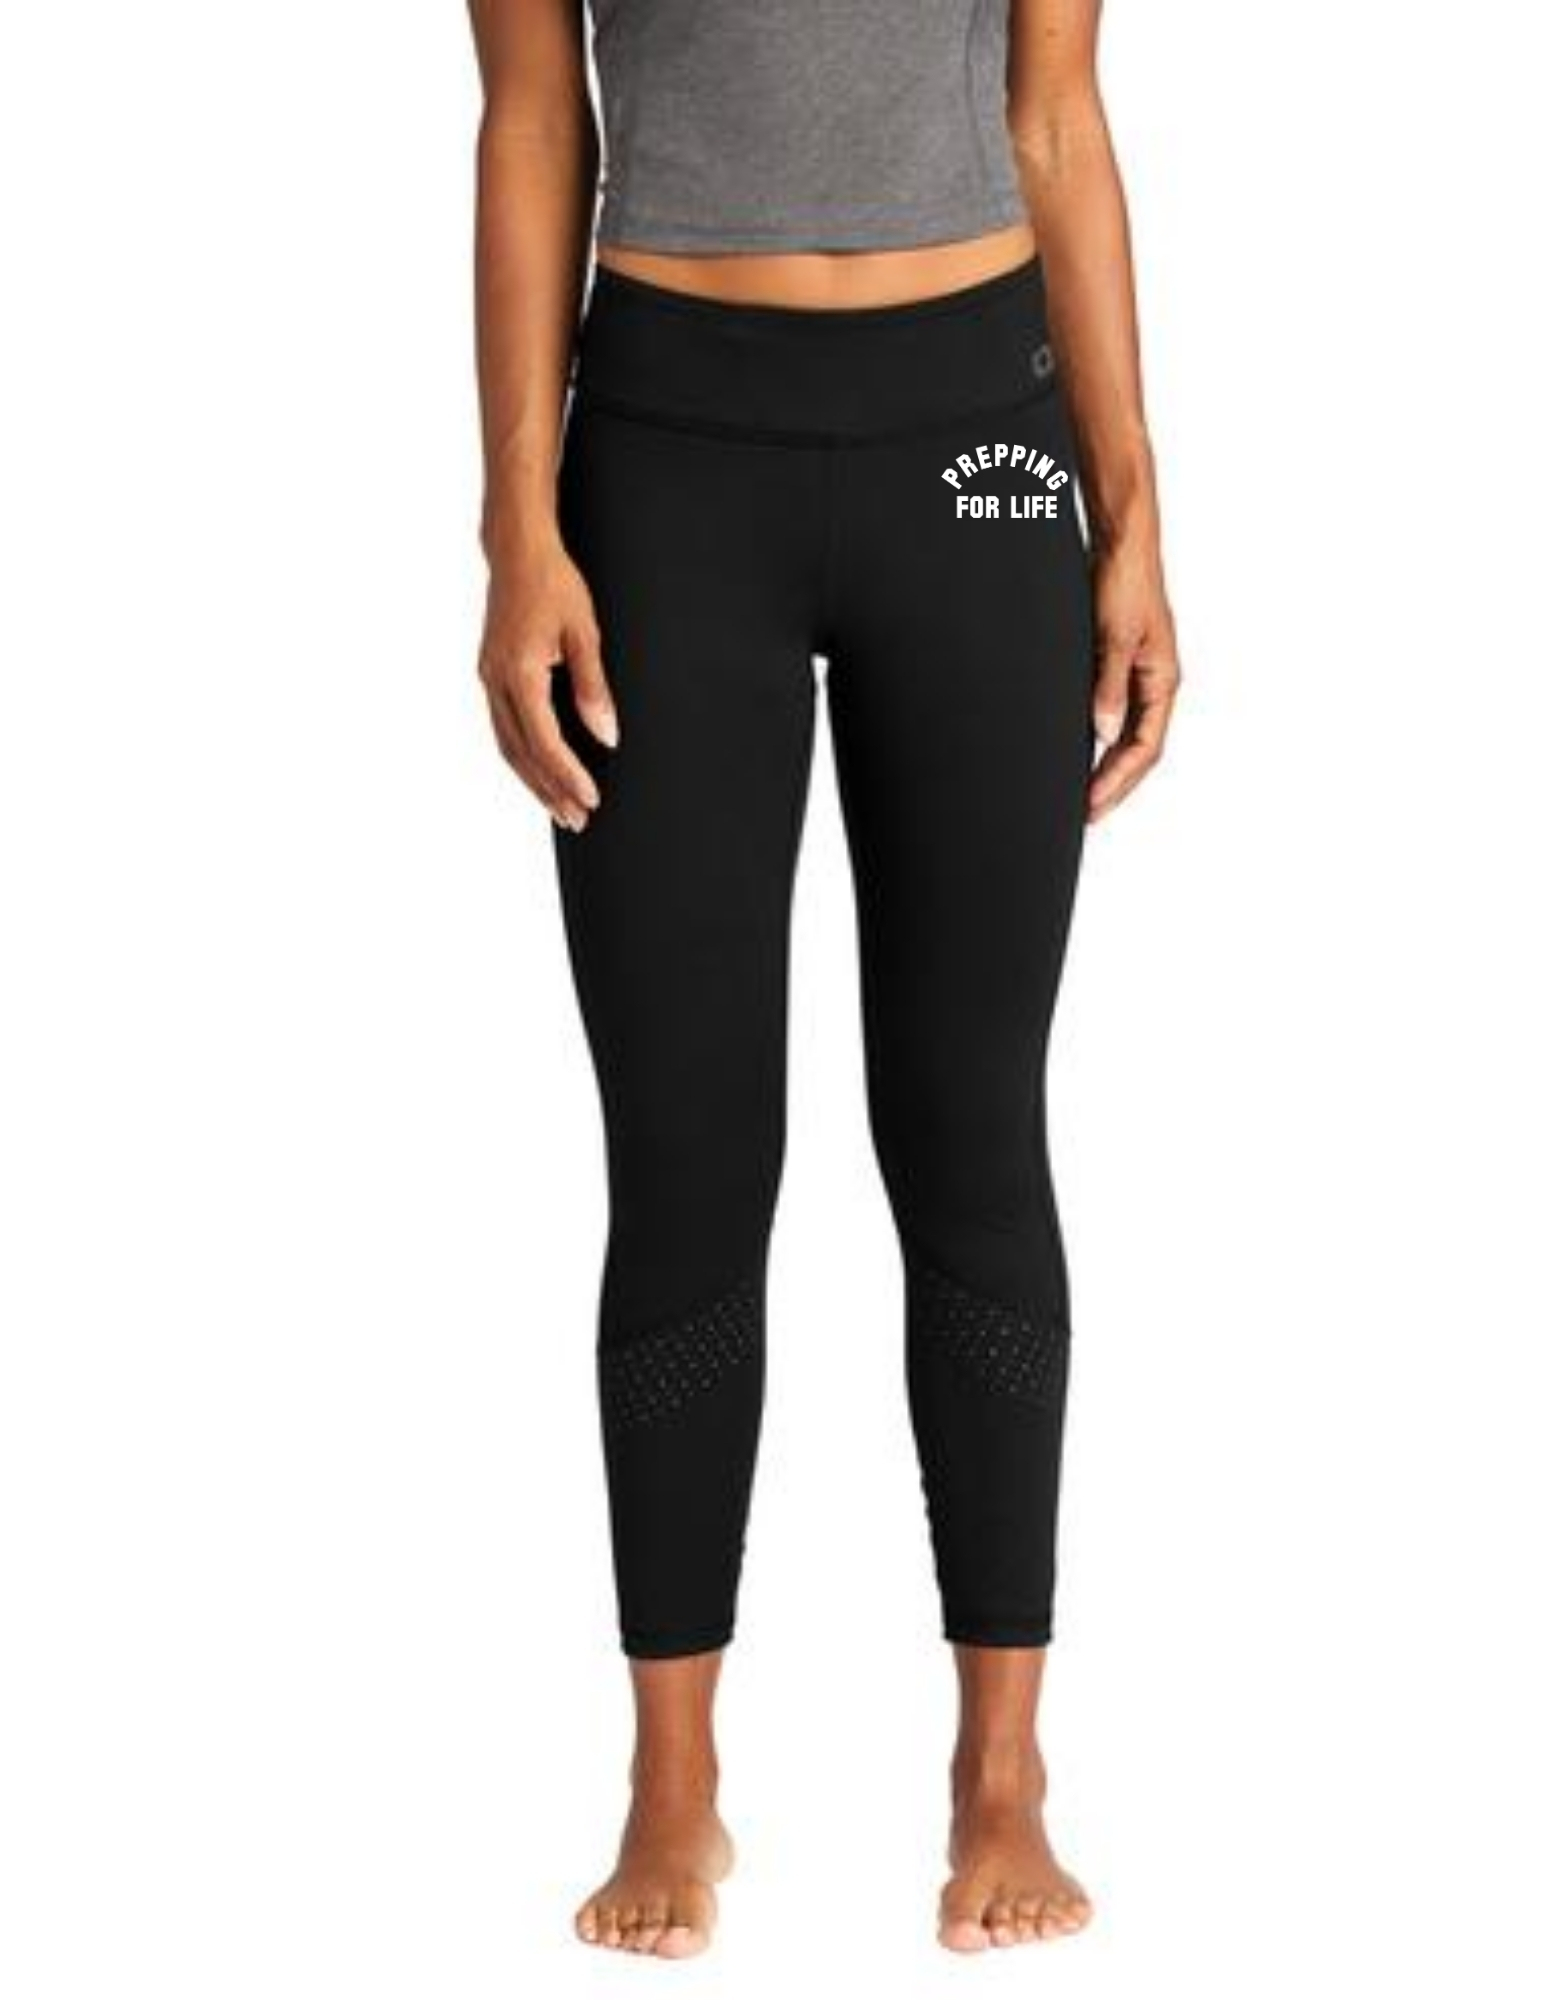 Prepping for Life OGIO Legging